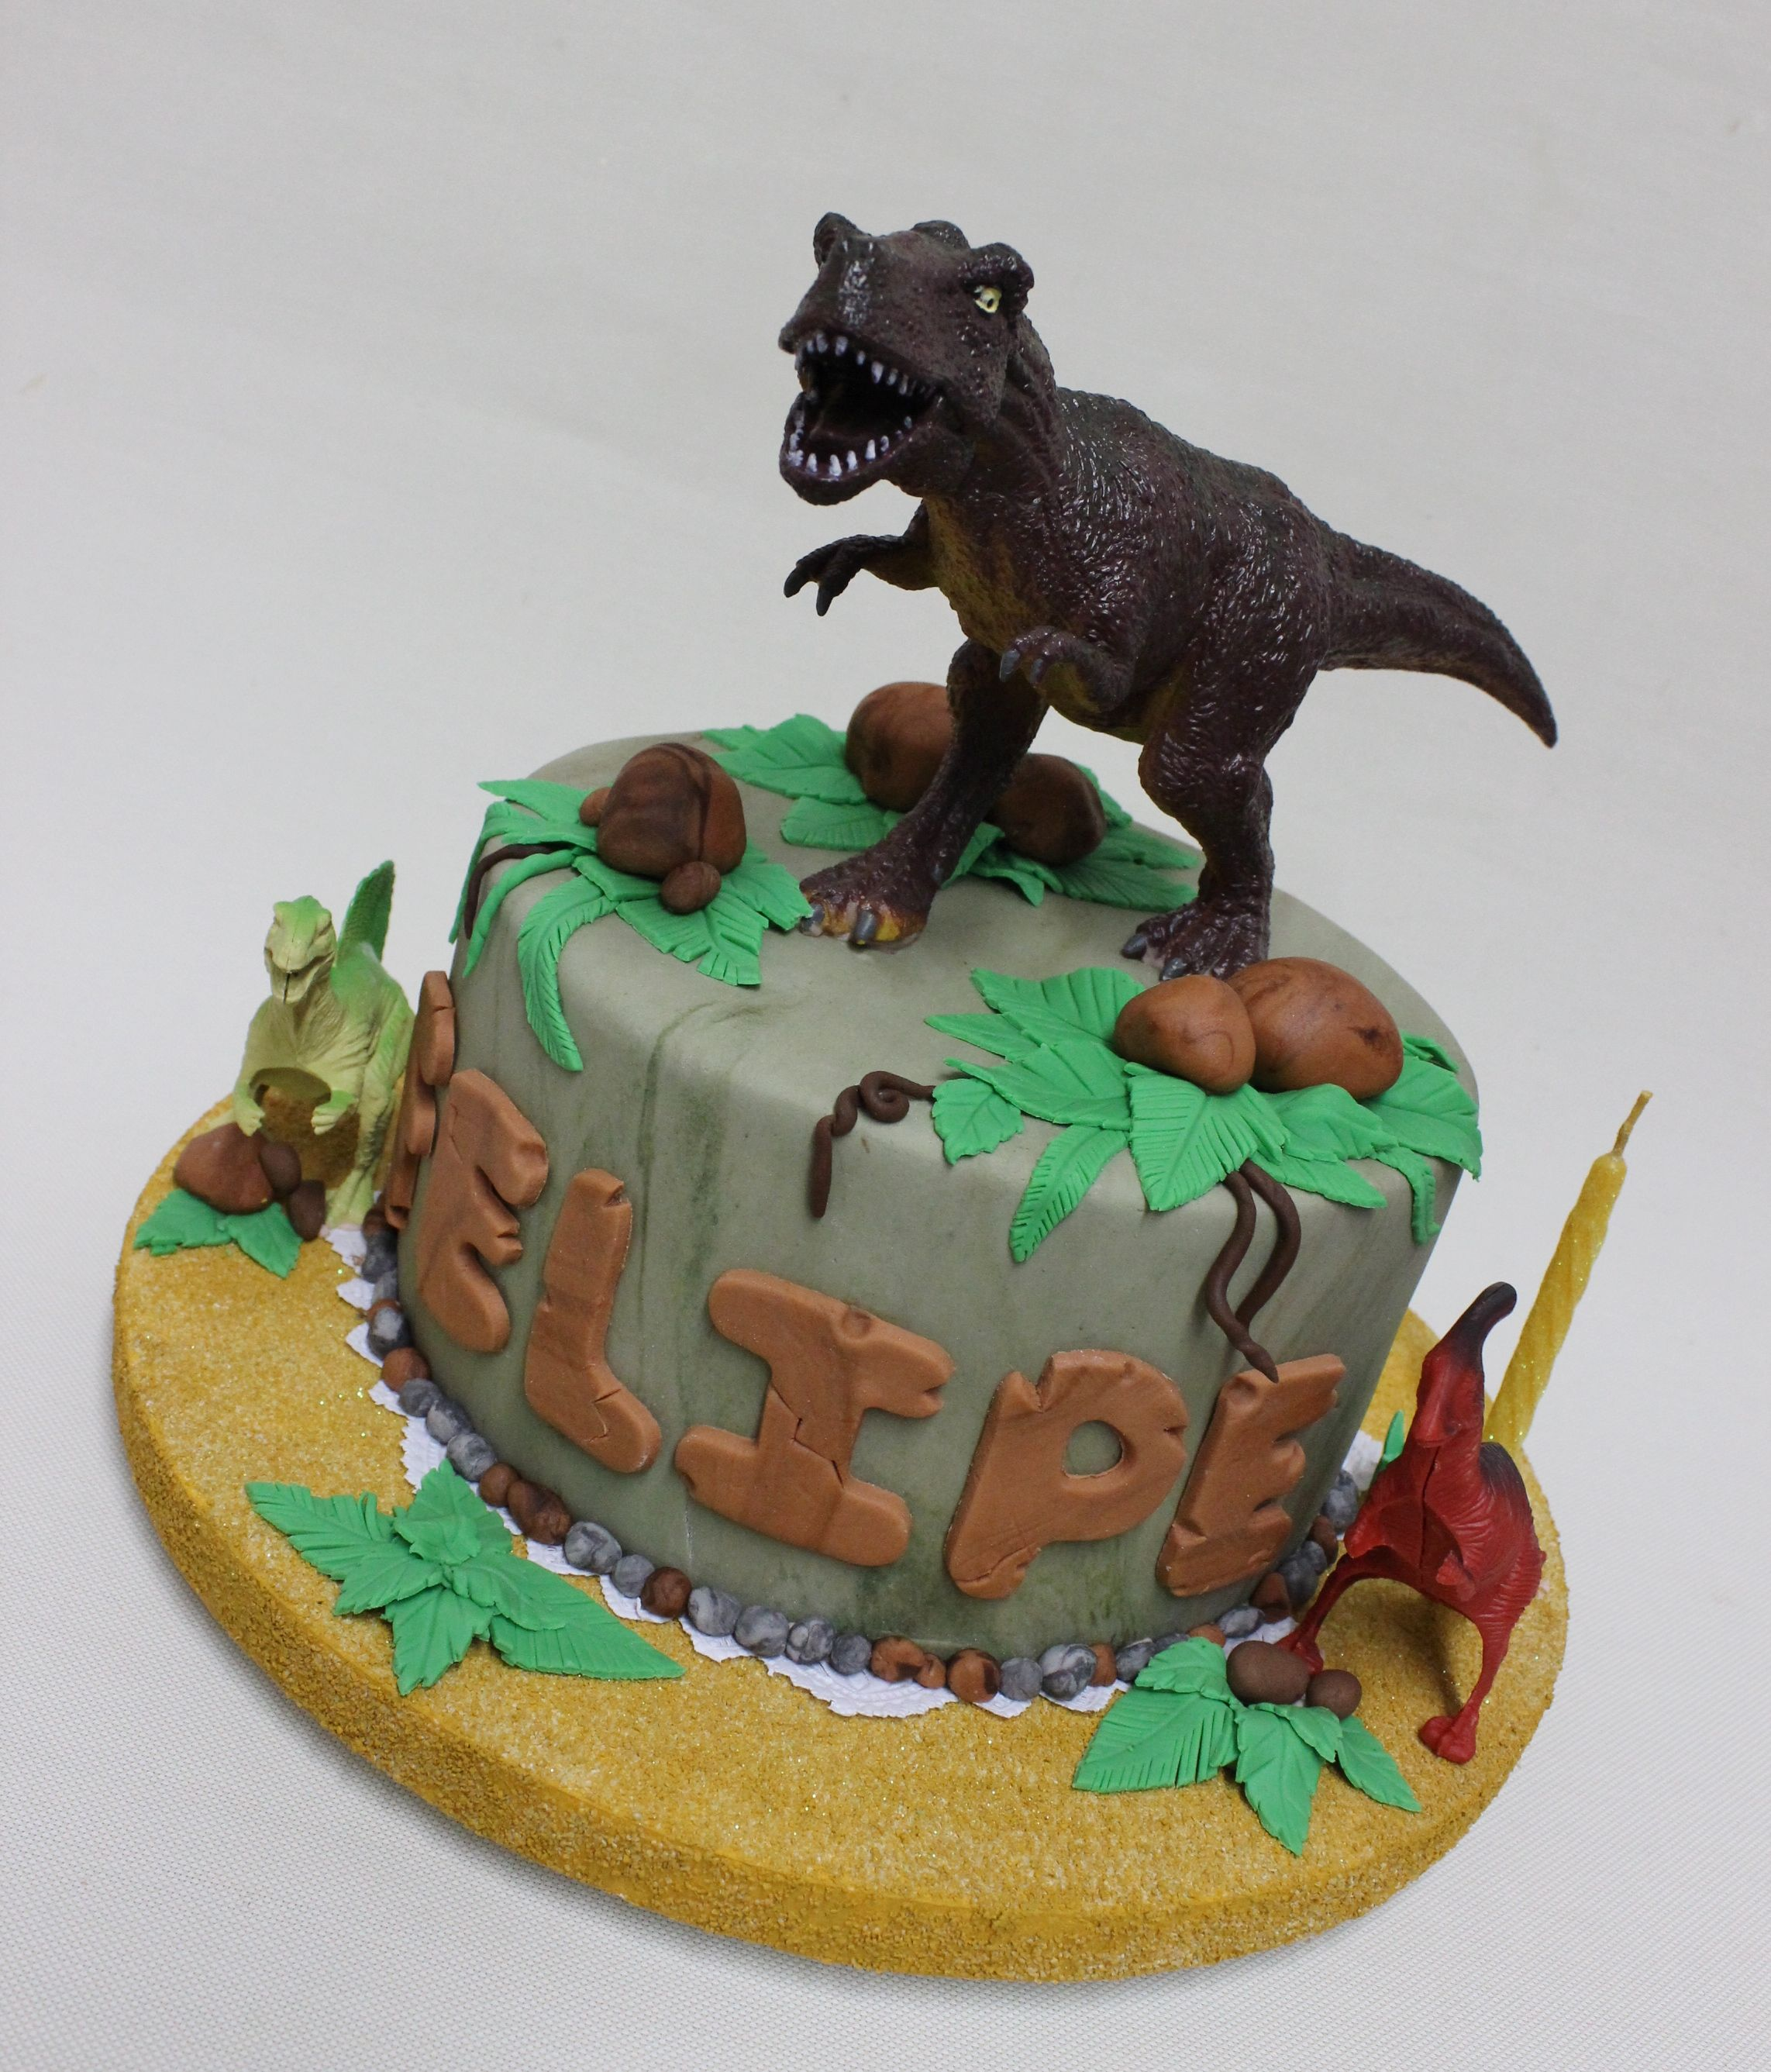 TRex Cake Violeta Glace Party Pinterest Cake Birthdays and